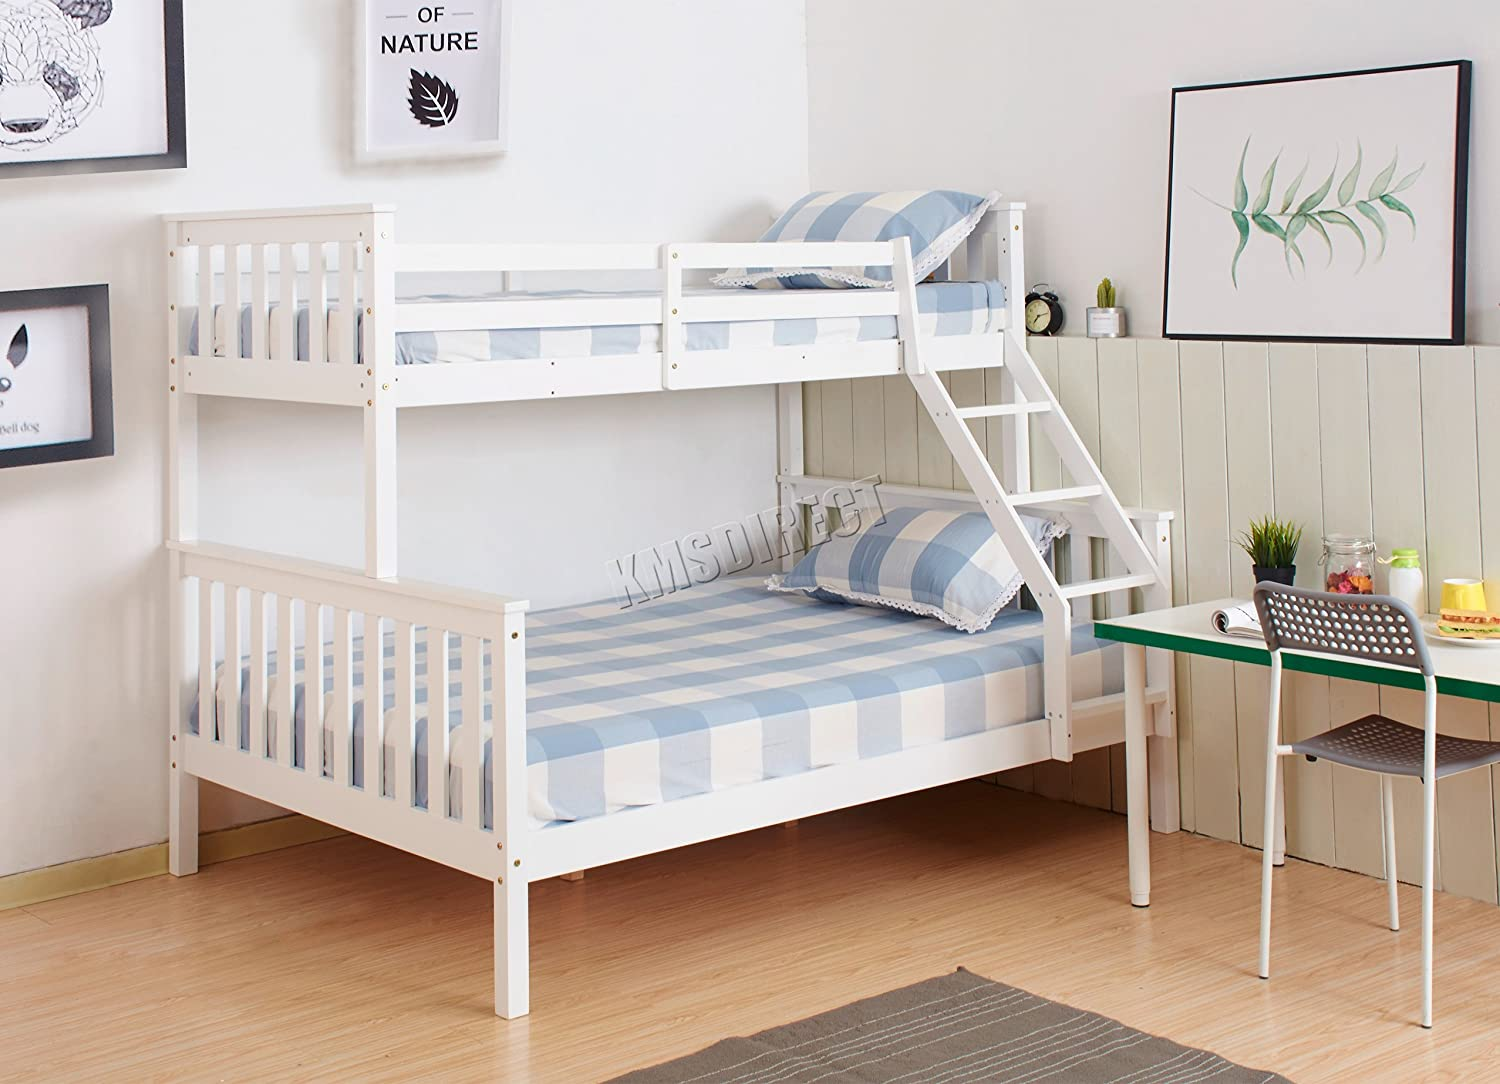 Foxhunter Triple Children Sleeper Bunk Bed With A New Wooden Frame Bed Without Mattress Protector White Top Single Bottom Double Bed Furniture Amazon De Kuche Haushalt